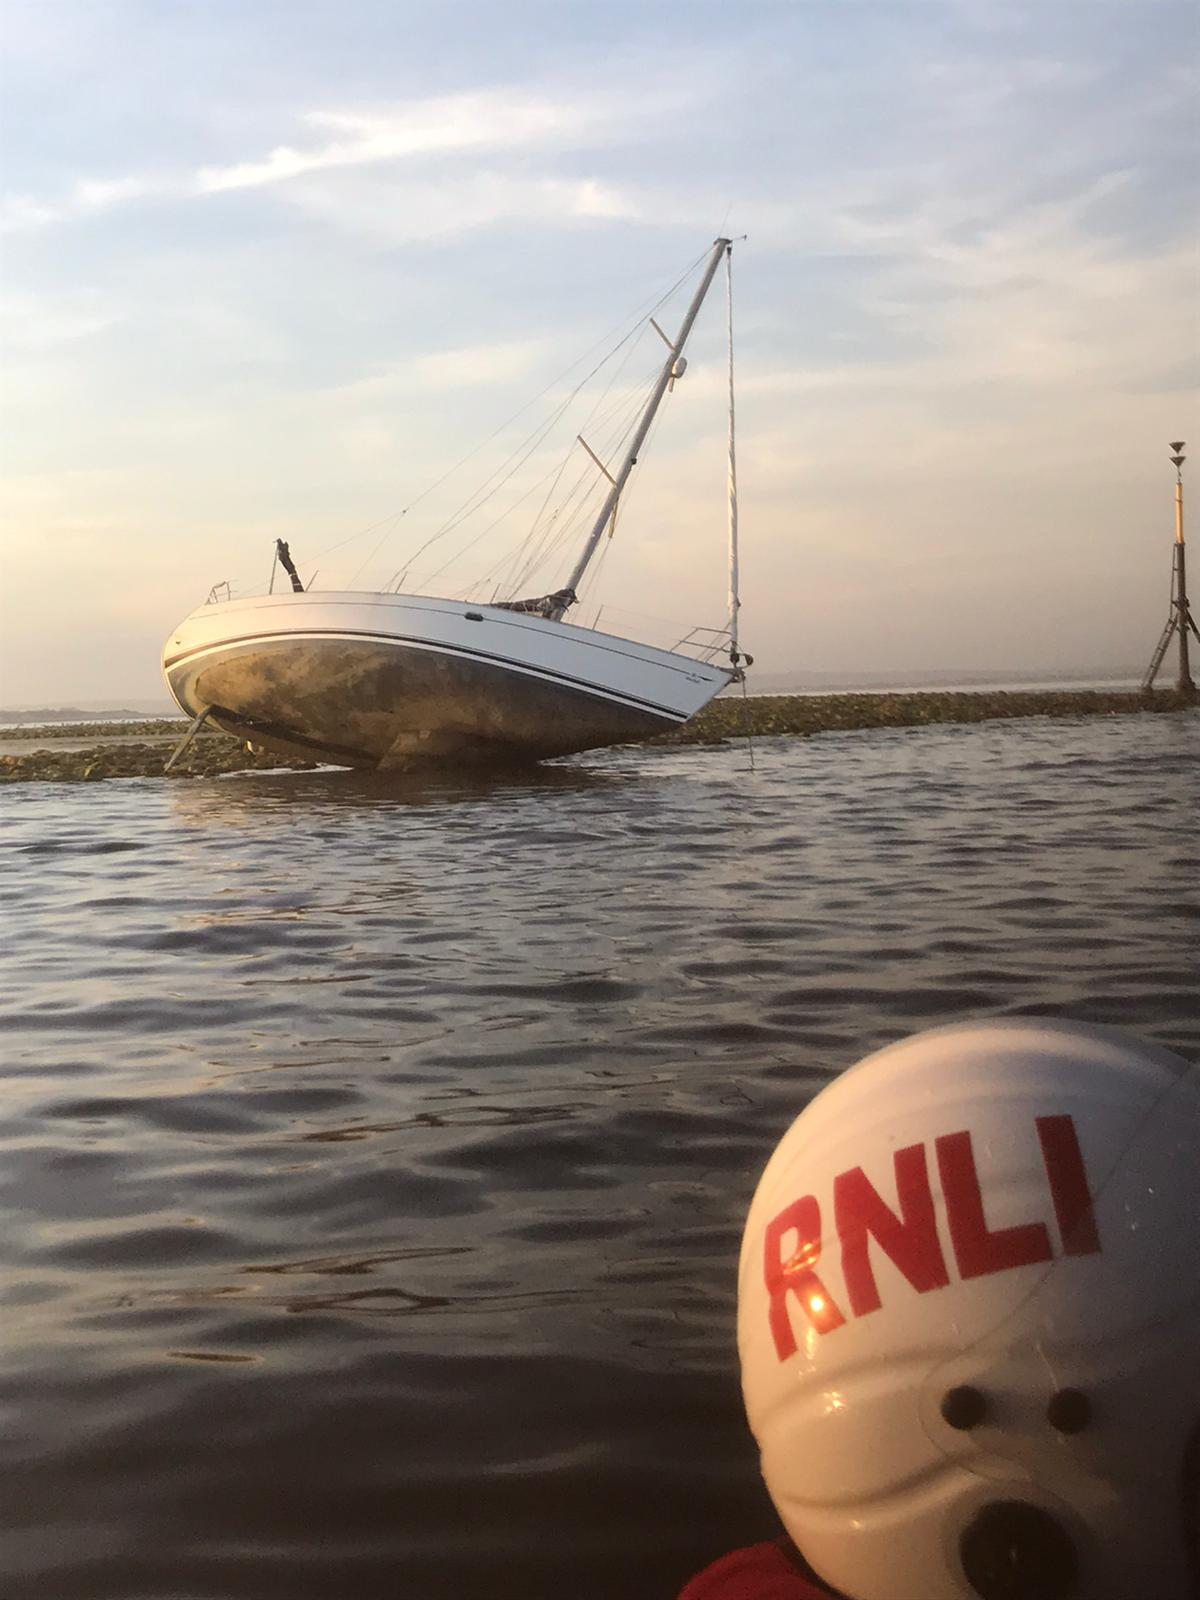 Yacht runs aground on Mixon rocks off Selsey Bill